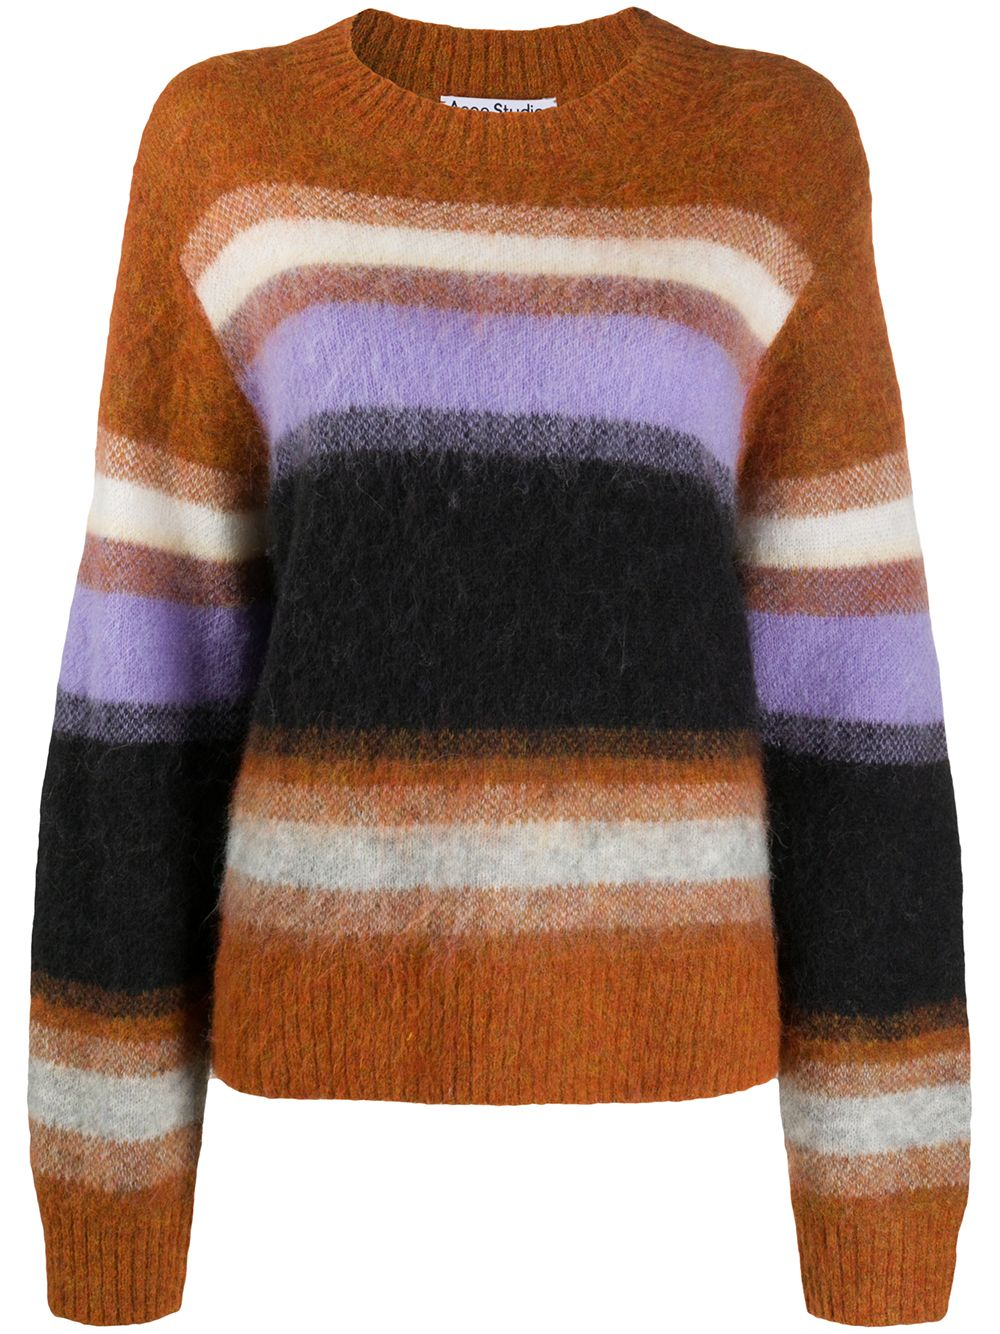 Wool Blend Crewneck Sweater